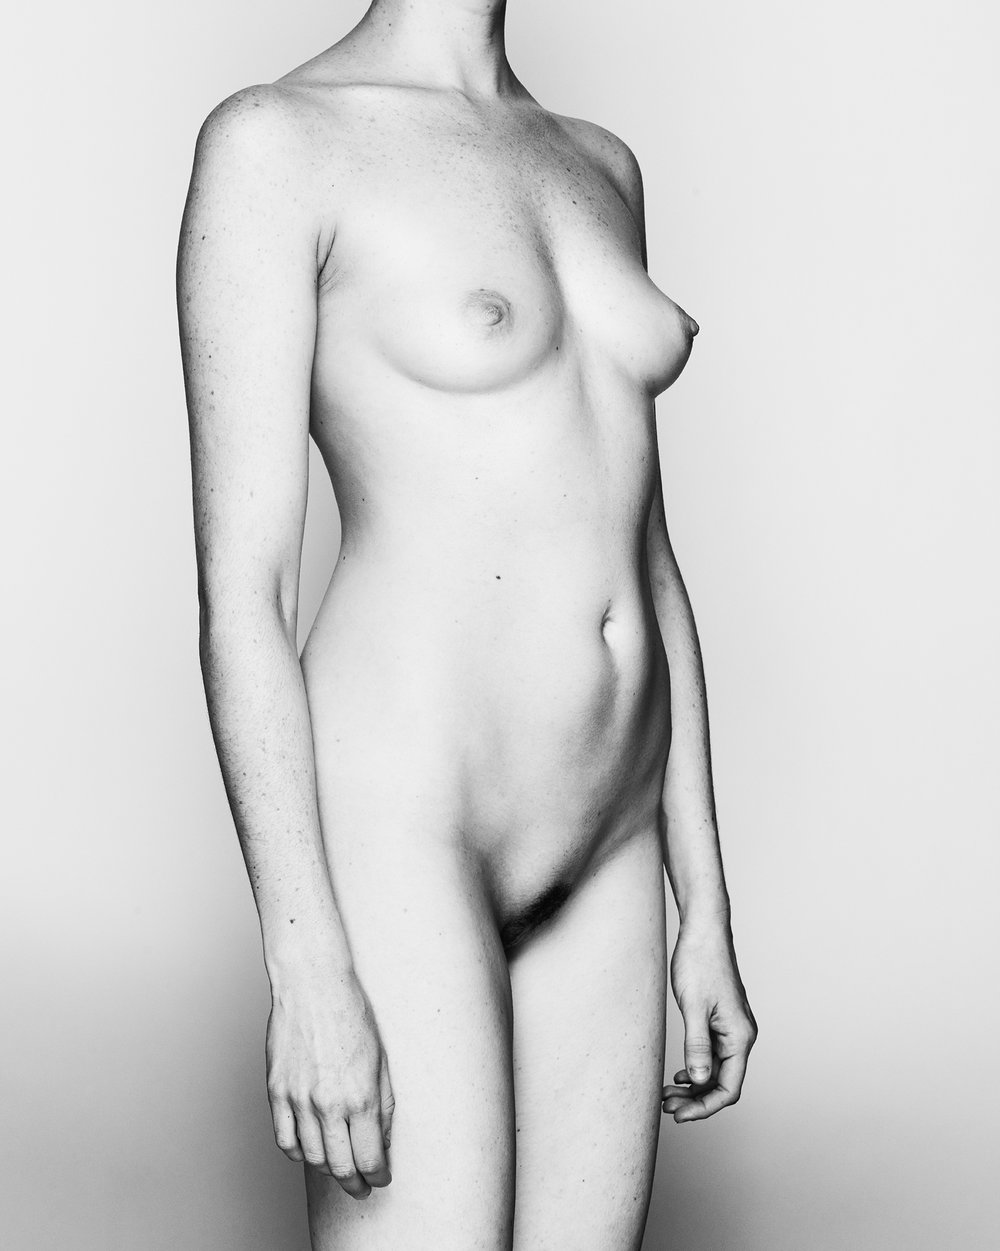 151130_BodyScapes_029_F.jpg